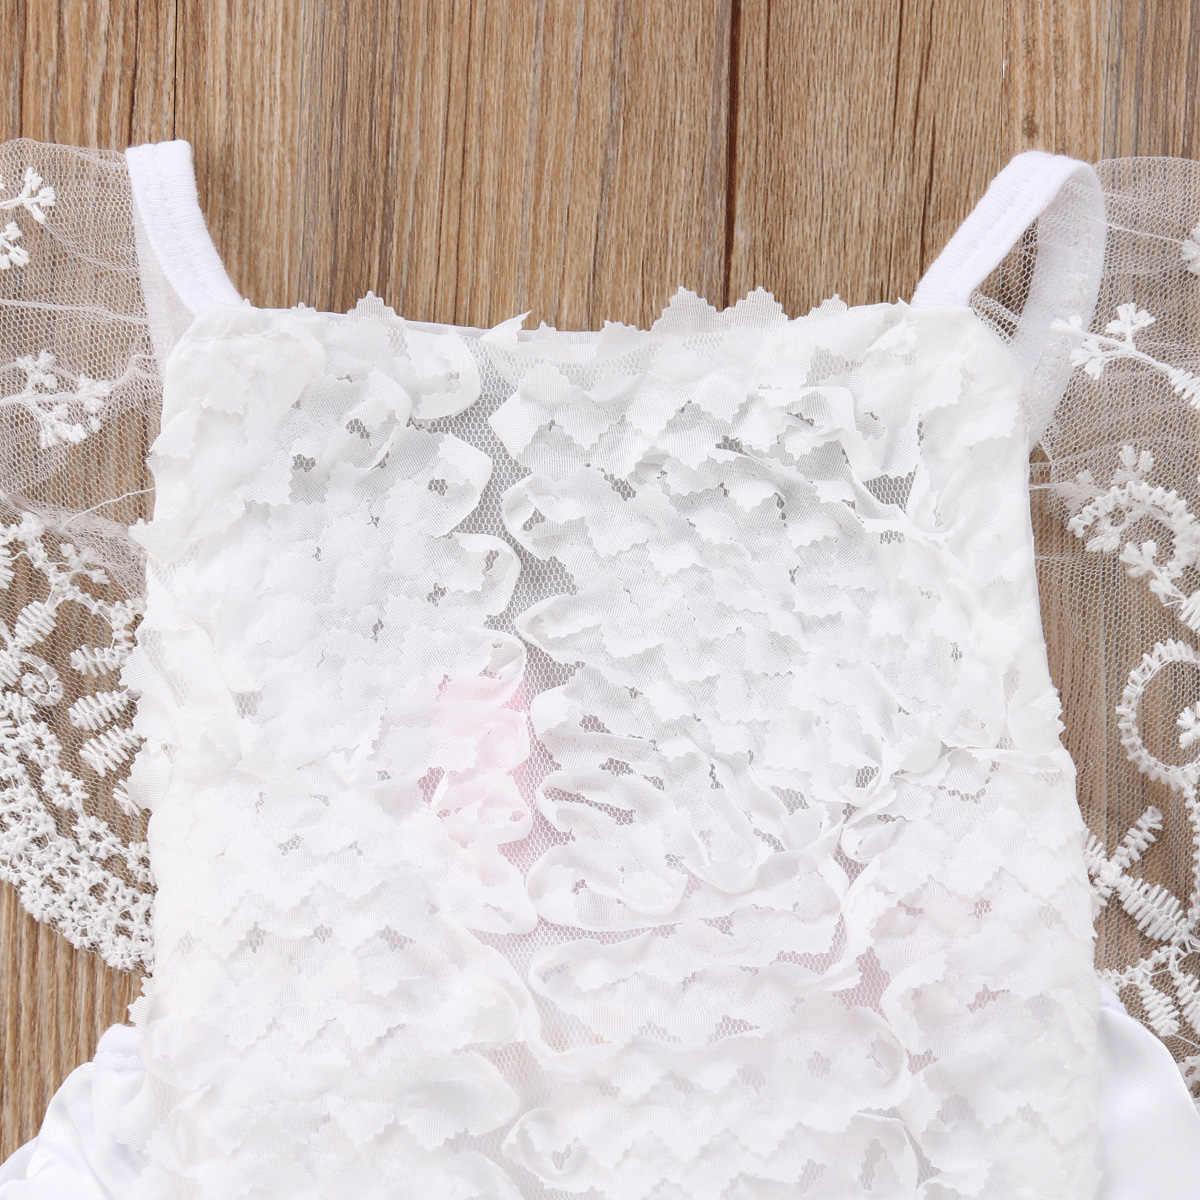 9e28a08dd7d08 New Kids Baby Girl Clothes Lace Floral Bodysuit Jumpsuit Sunsuit Outfit  Stock Babys Sleeveless Fashion Clothe Baby Clothing Sets